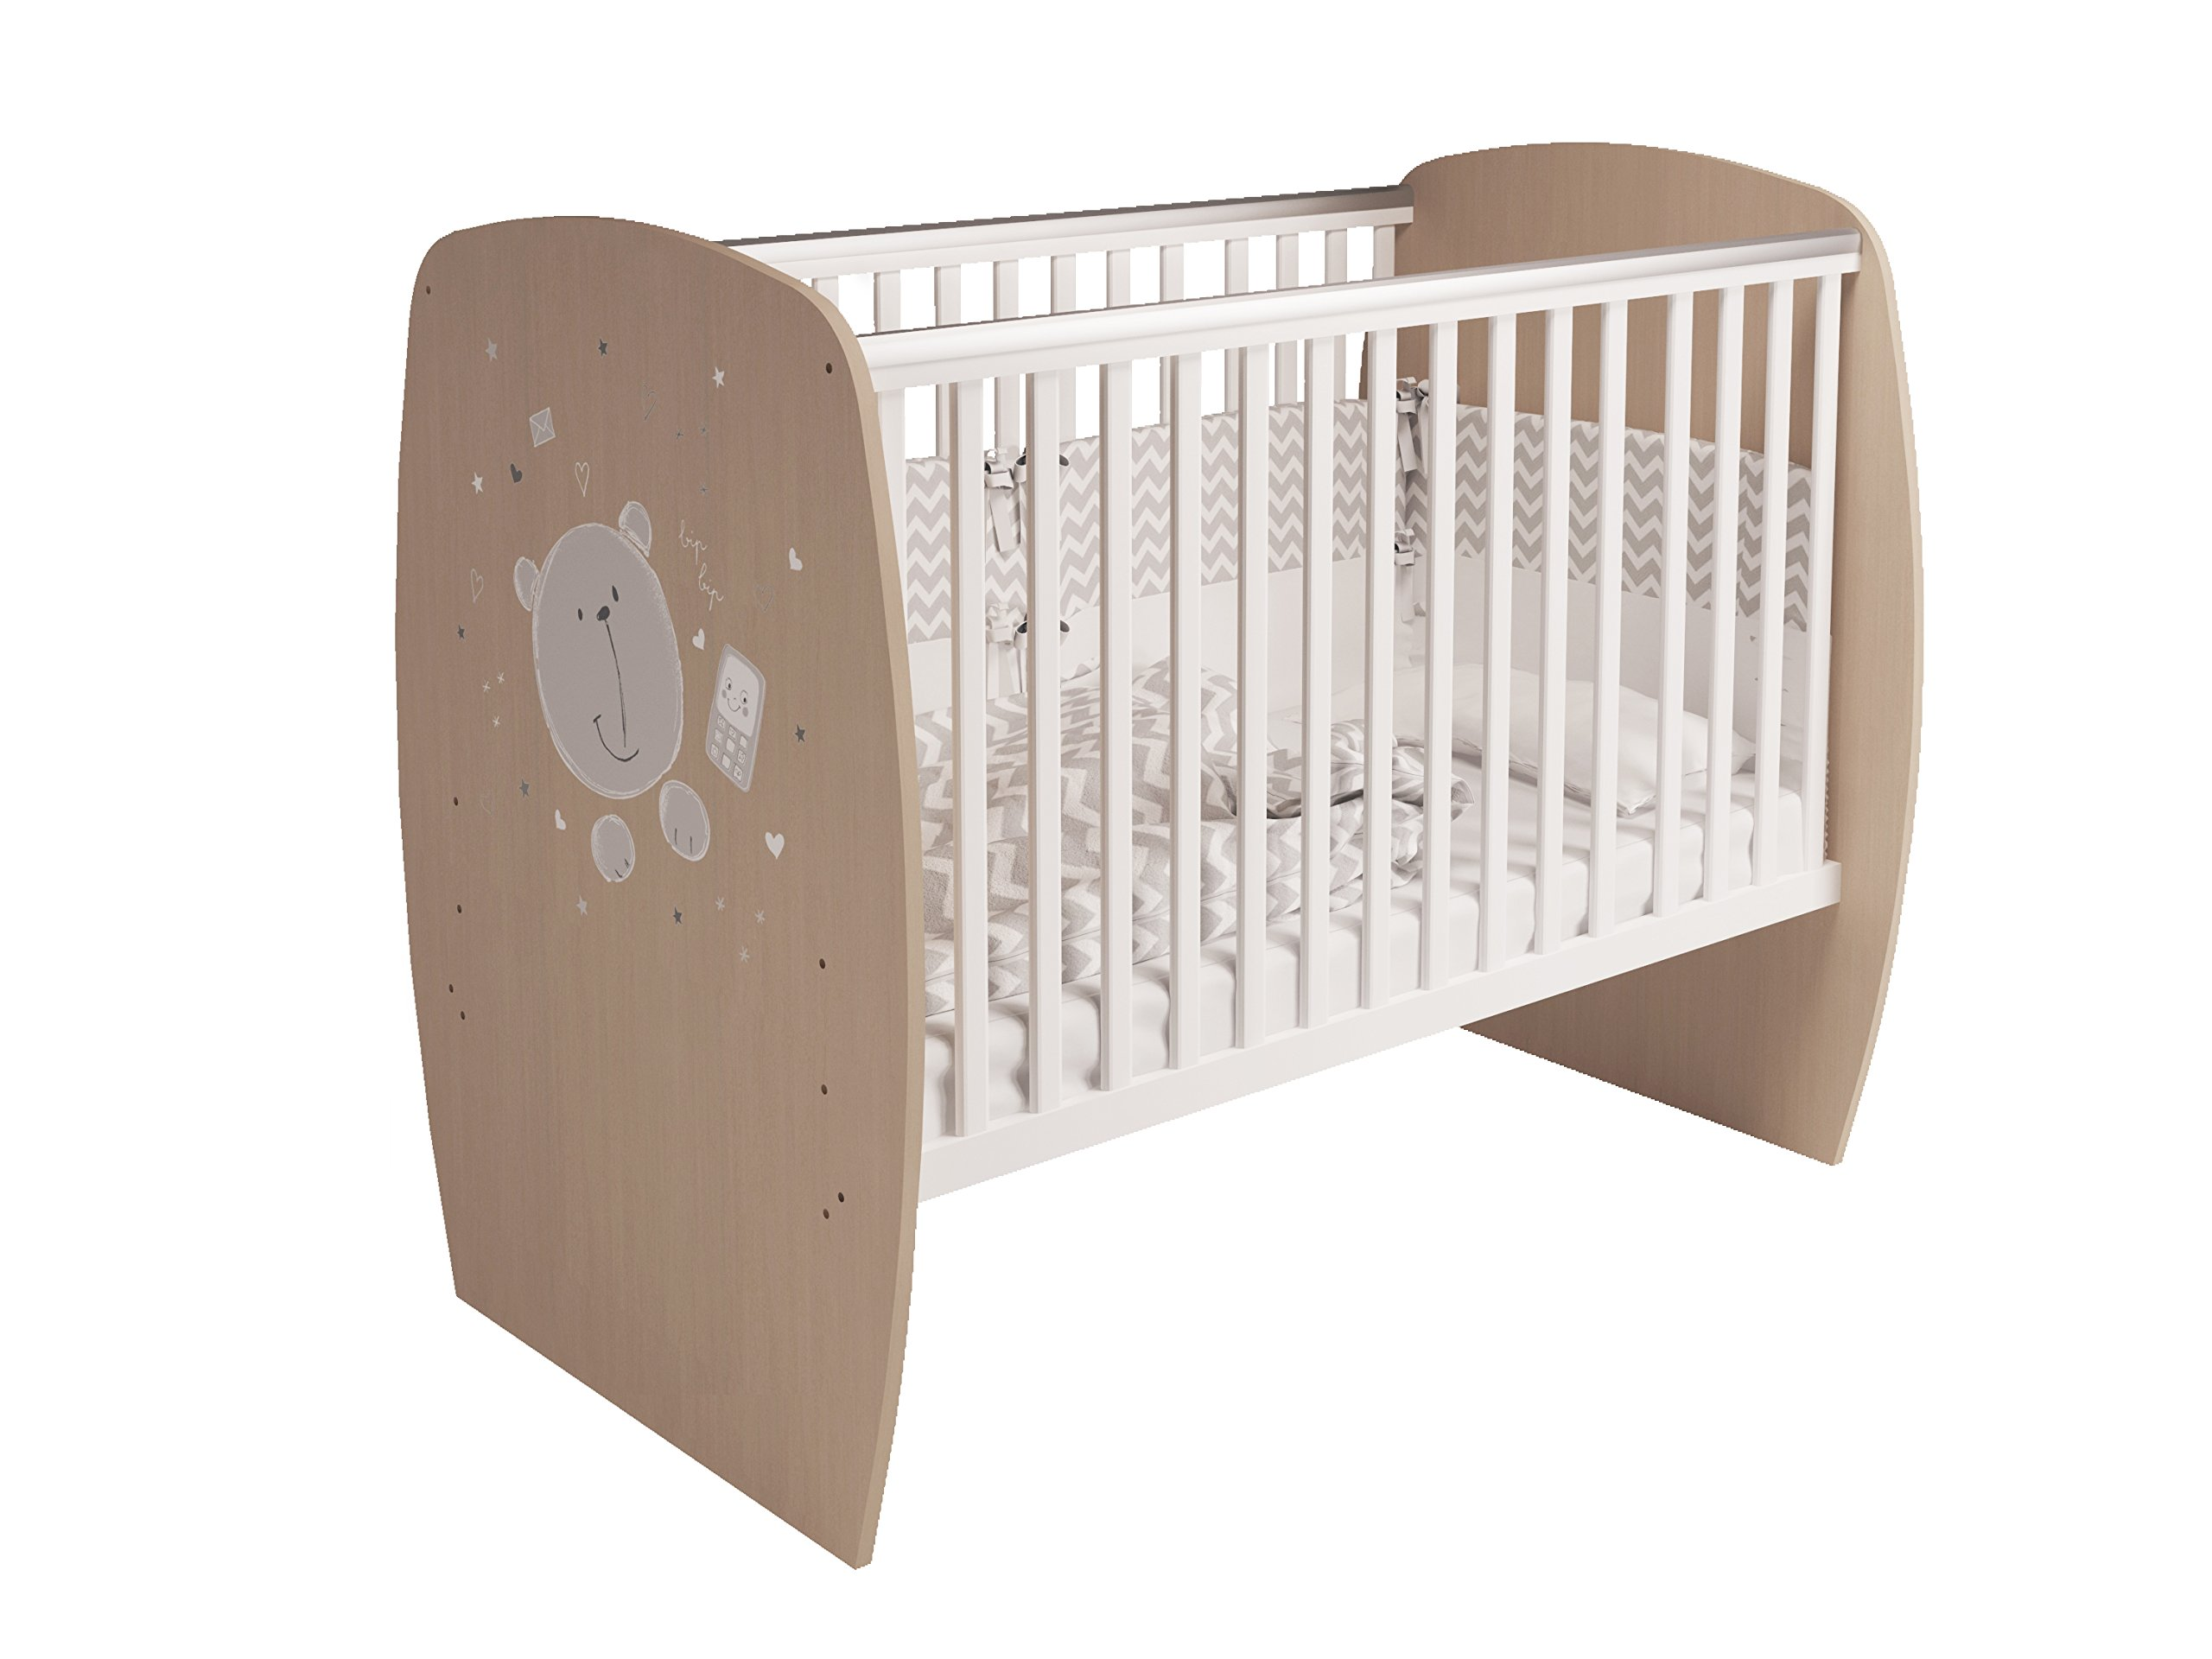 Polini Kids 0001527.62 French 700 Teddy Design Baby Cot, White-Pastel Oak Polini Kids 3 heights of the slatted bed base Protective PVC rails and soft-cornered bed sides Available with and without a drawer 1